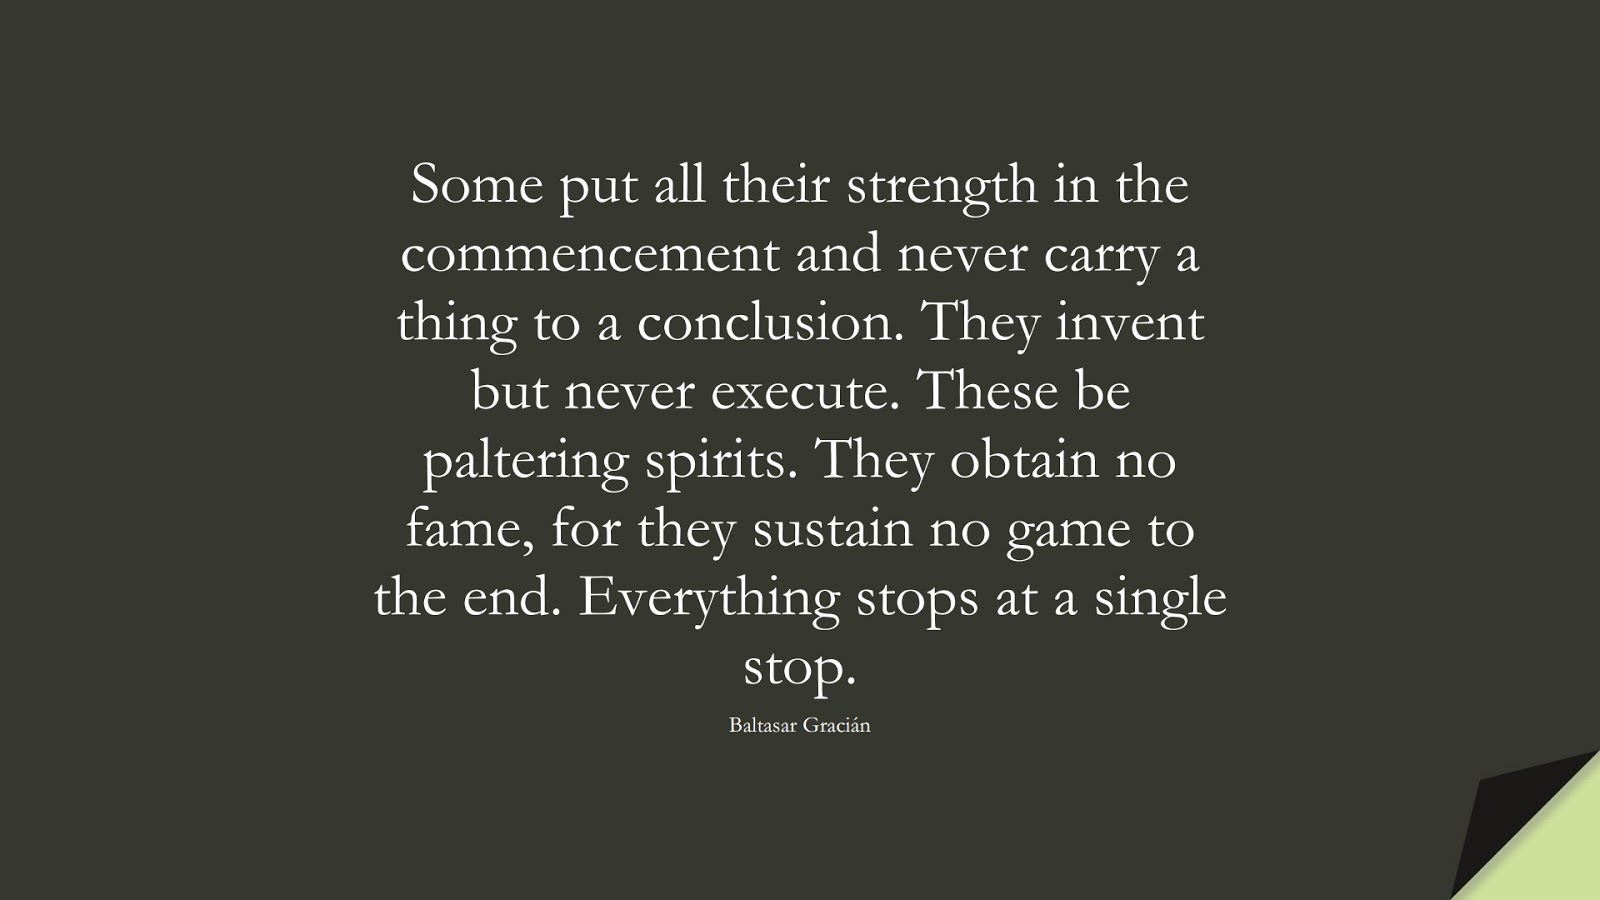 Some put all their strength in the commencement and never carry a thing to a conclusion. They invent but never execute. These be paltering spirits. They obtain no fame, for they sustain no game to the end. Everything stops at a single stop. (Baltasar Gracián);  #NeverGiveUpQuotes